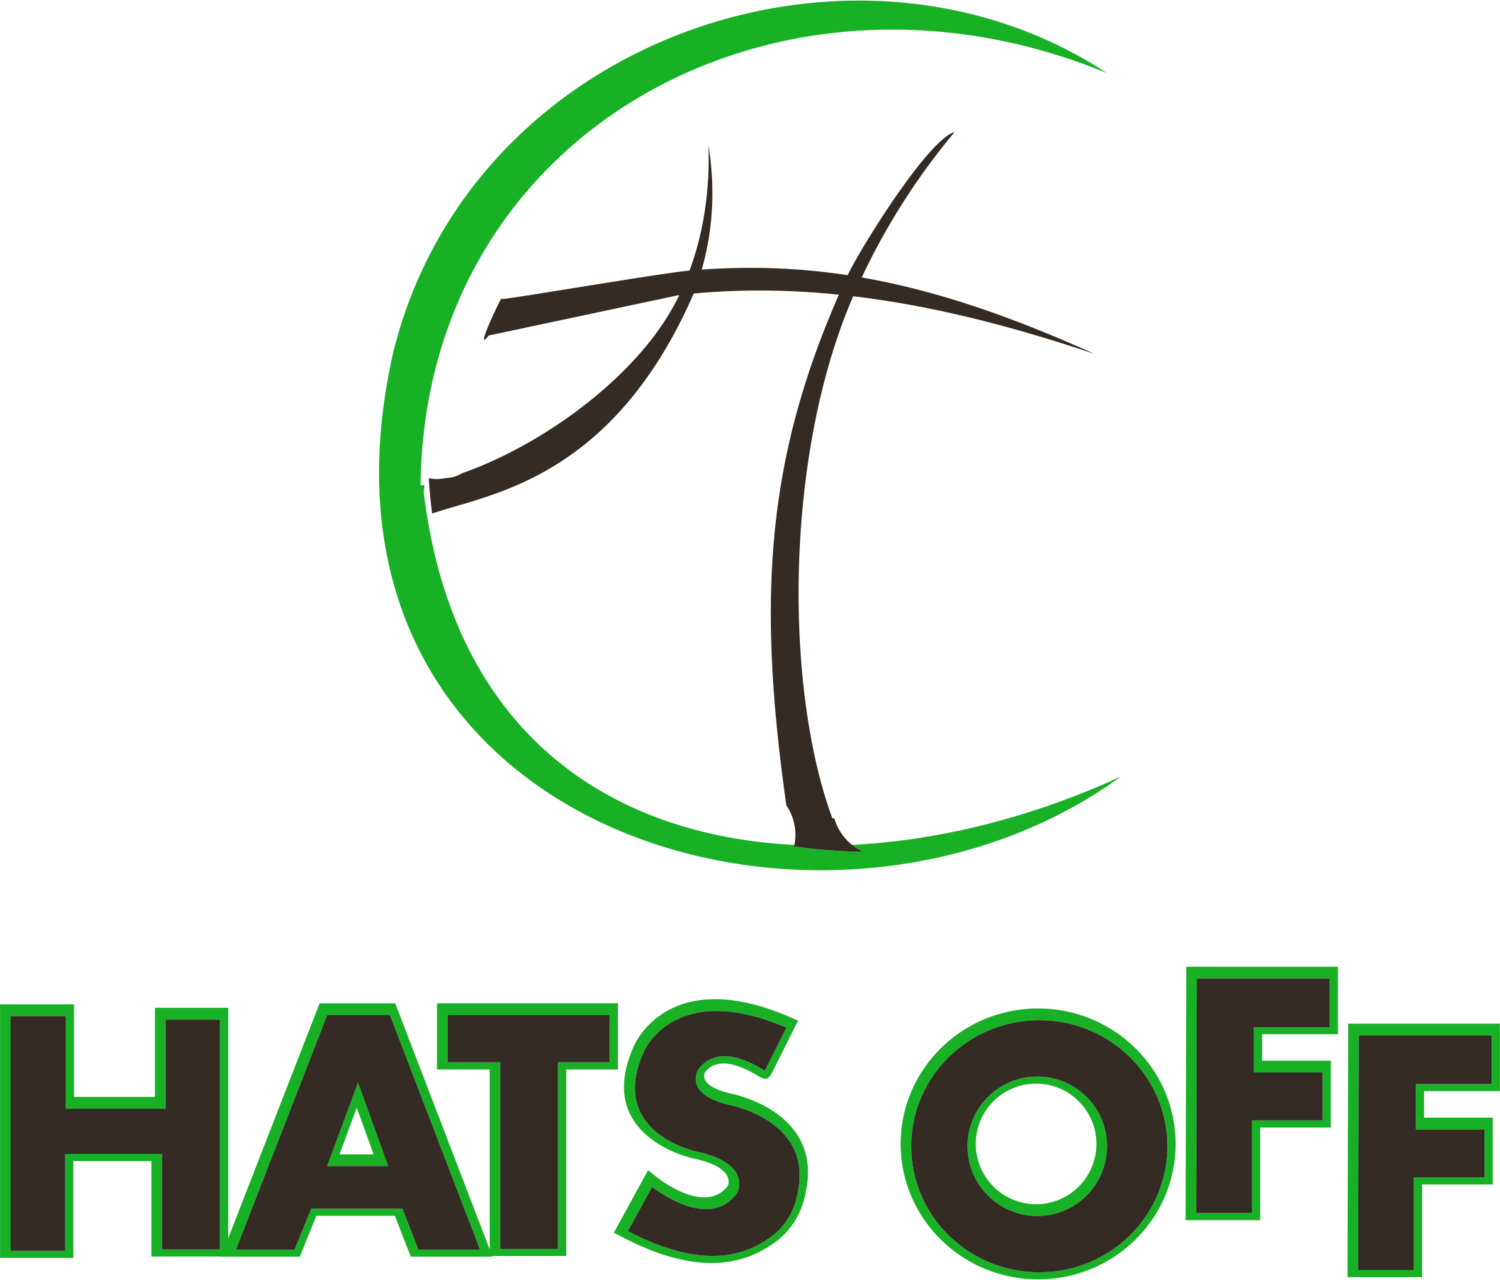 Hats Off logo